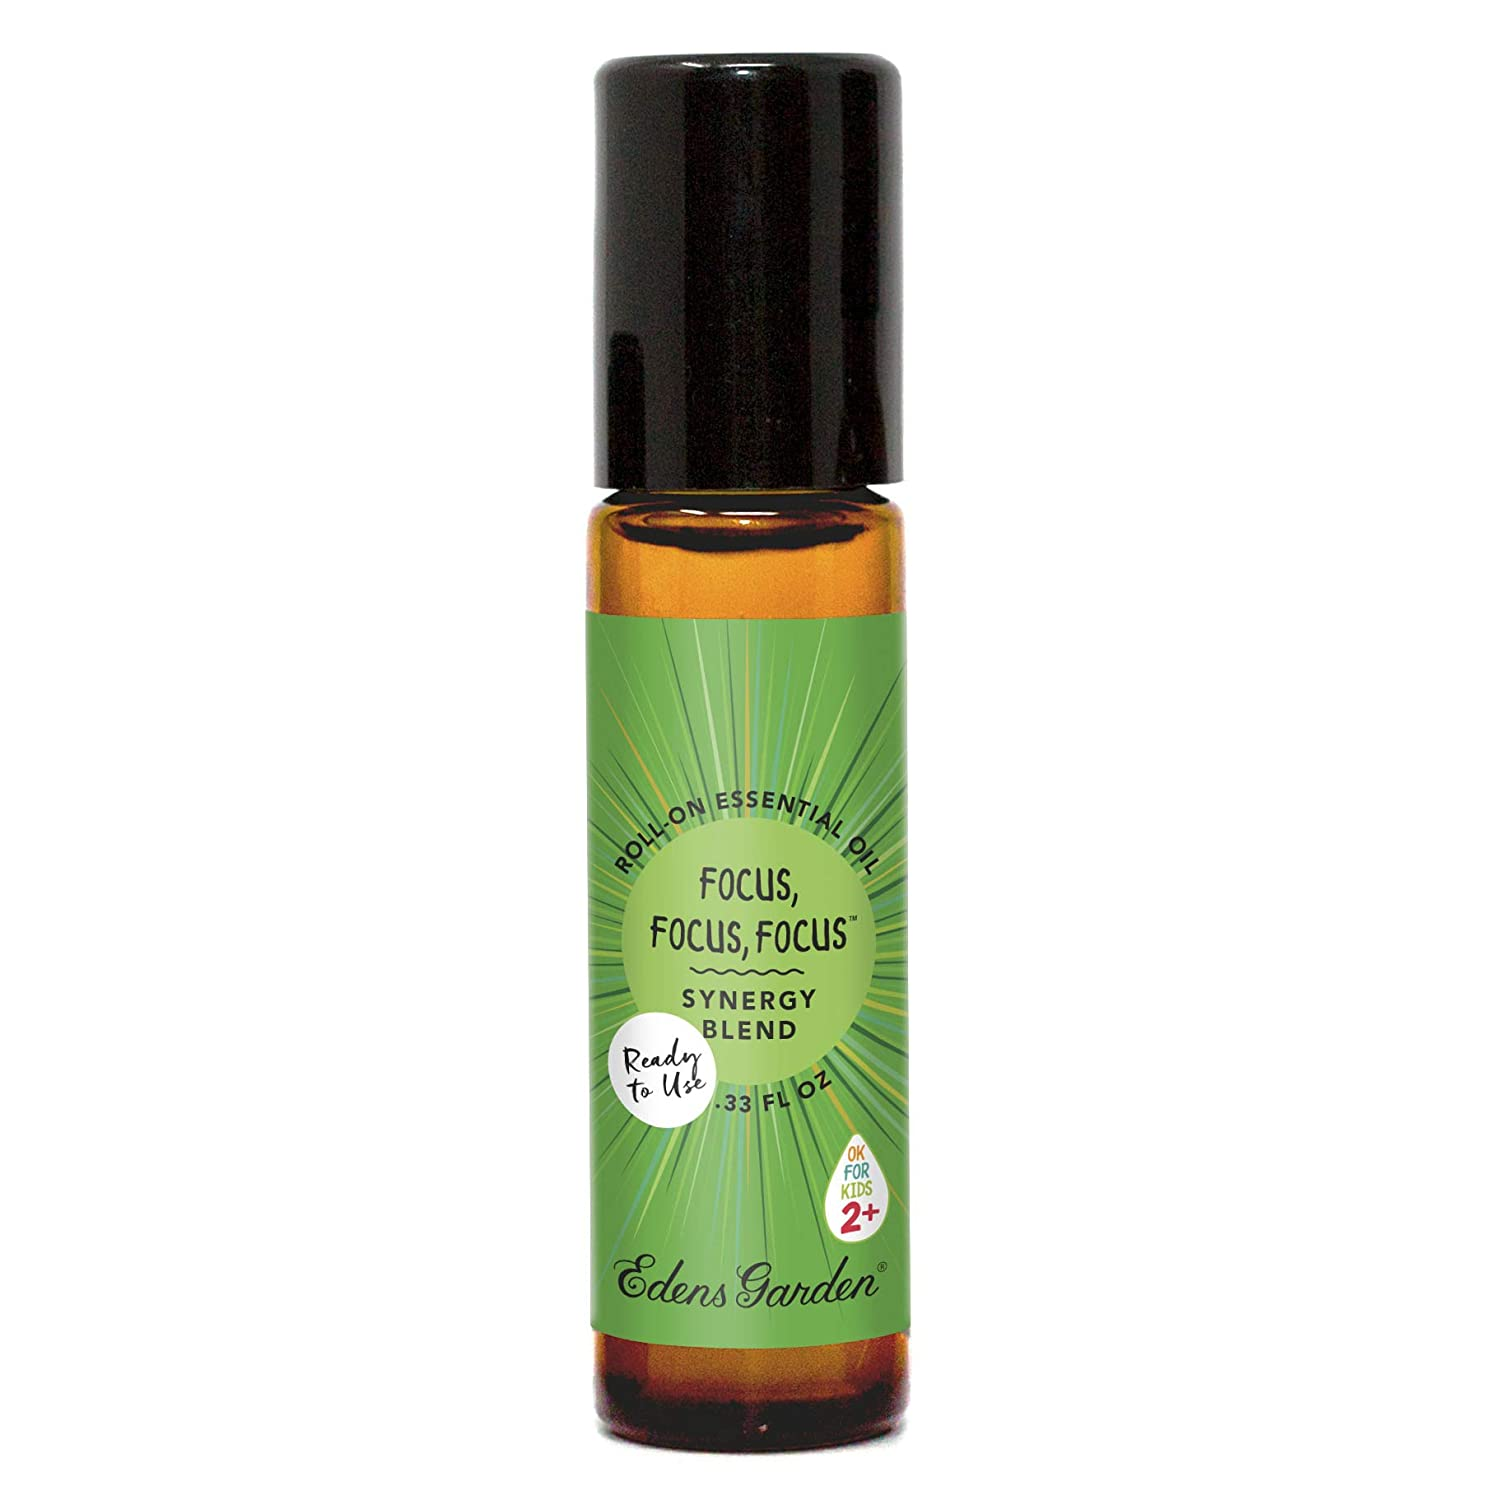 """Edens Garden Focus, Focus, Focus""""OK For Kids"""" Essential Oil Synergy Blend, 100% Pure Therapeutic Grade (Child Safe 2+, Pre-Diluted & Ready To Use, Detox & Energy) 10 ml Roll-On"""